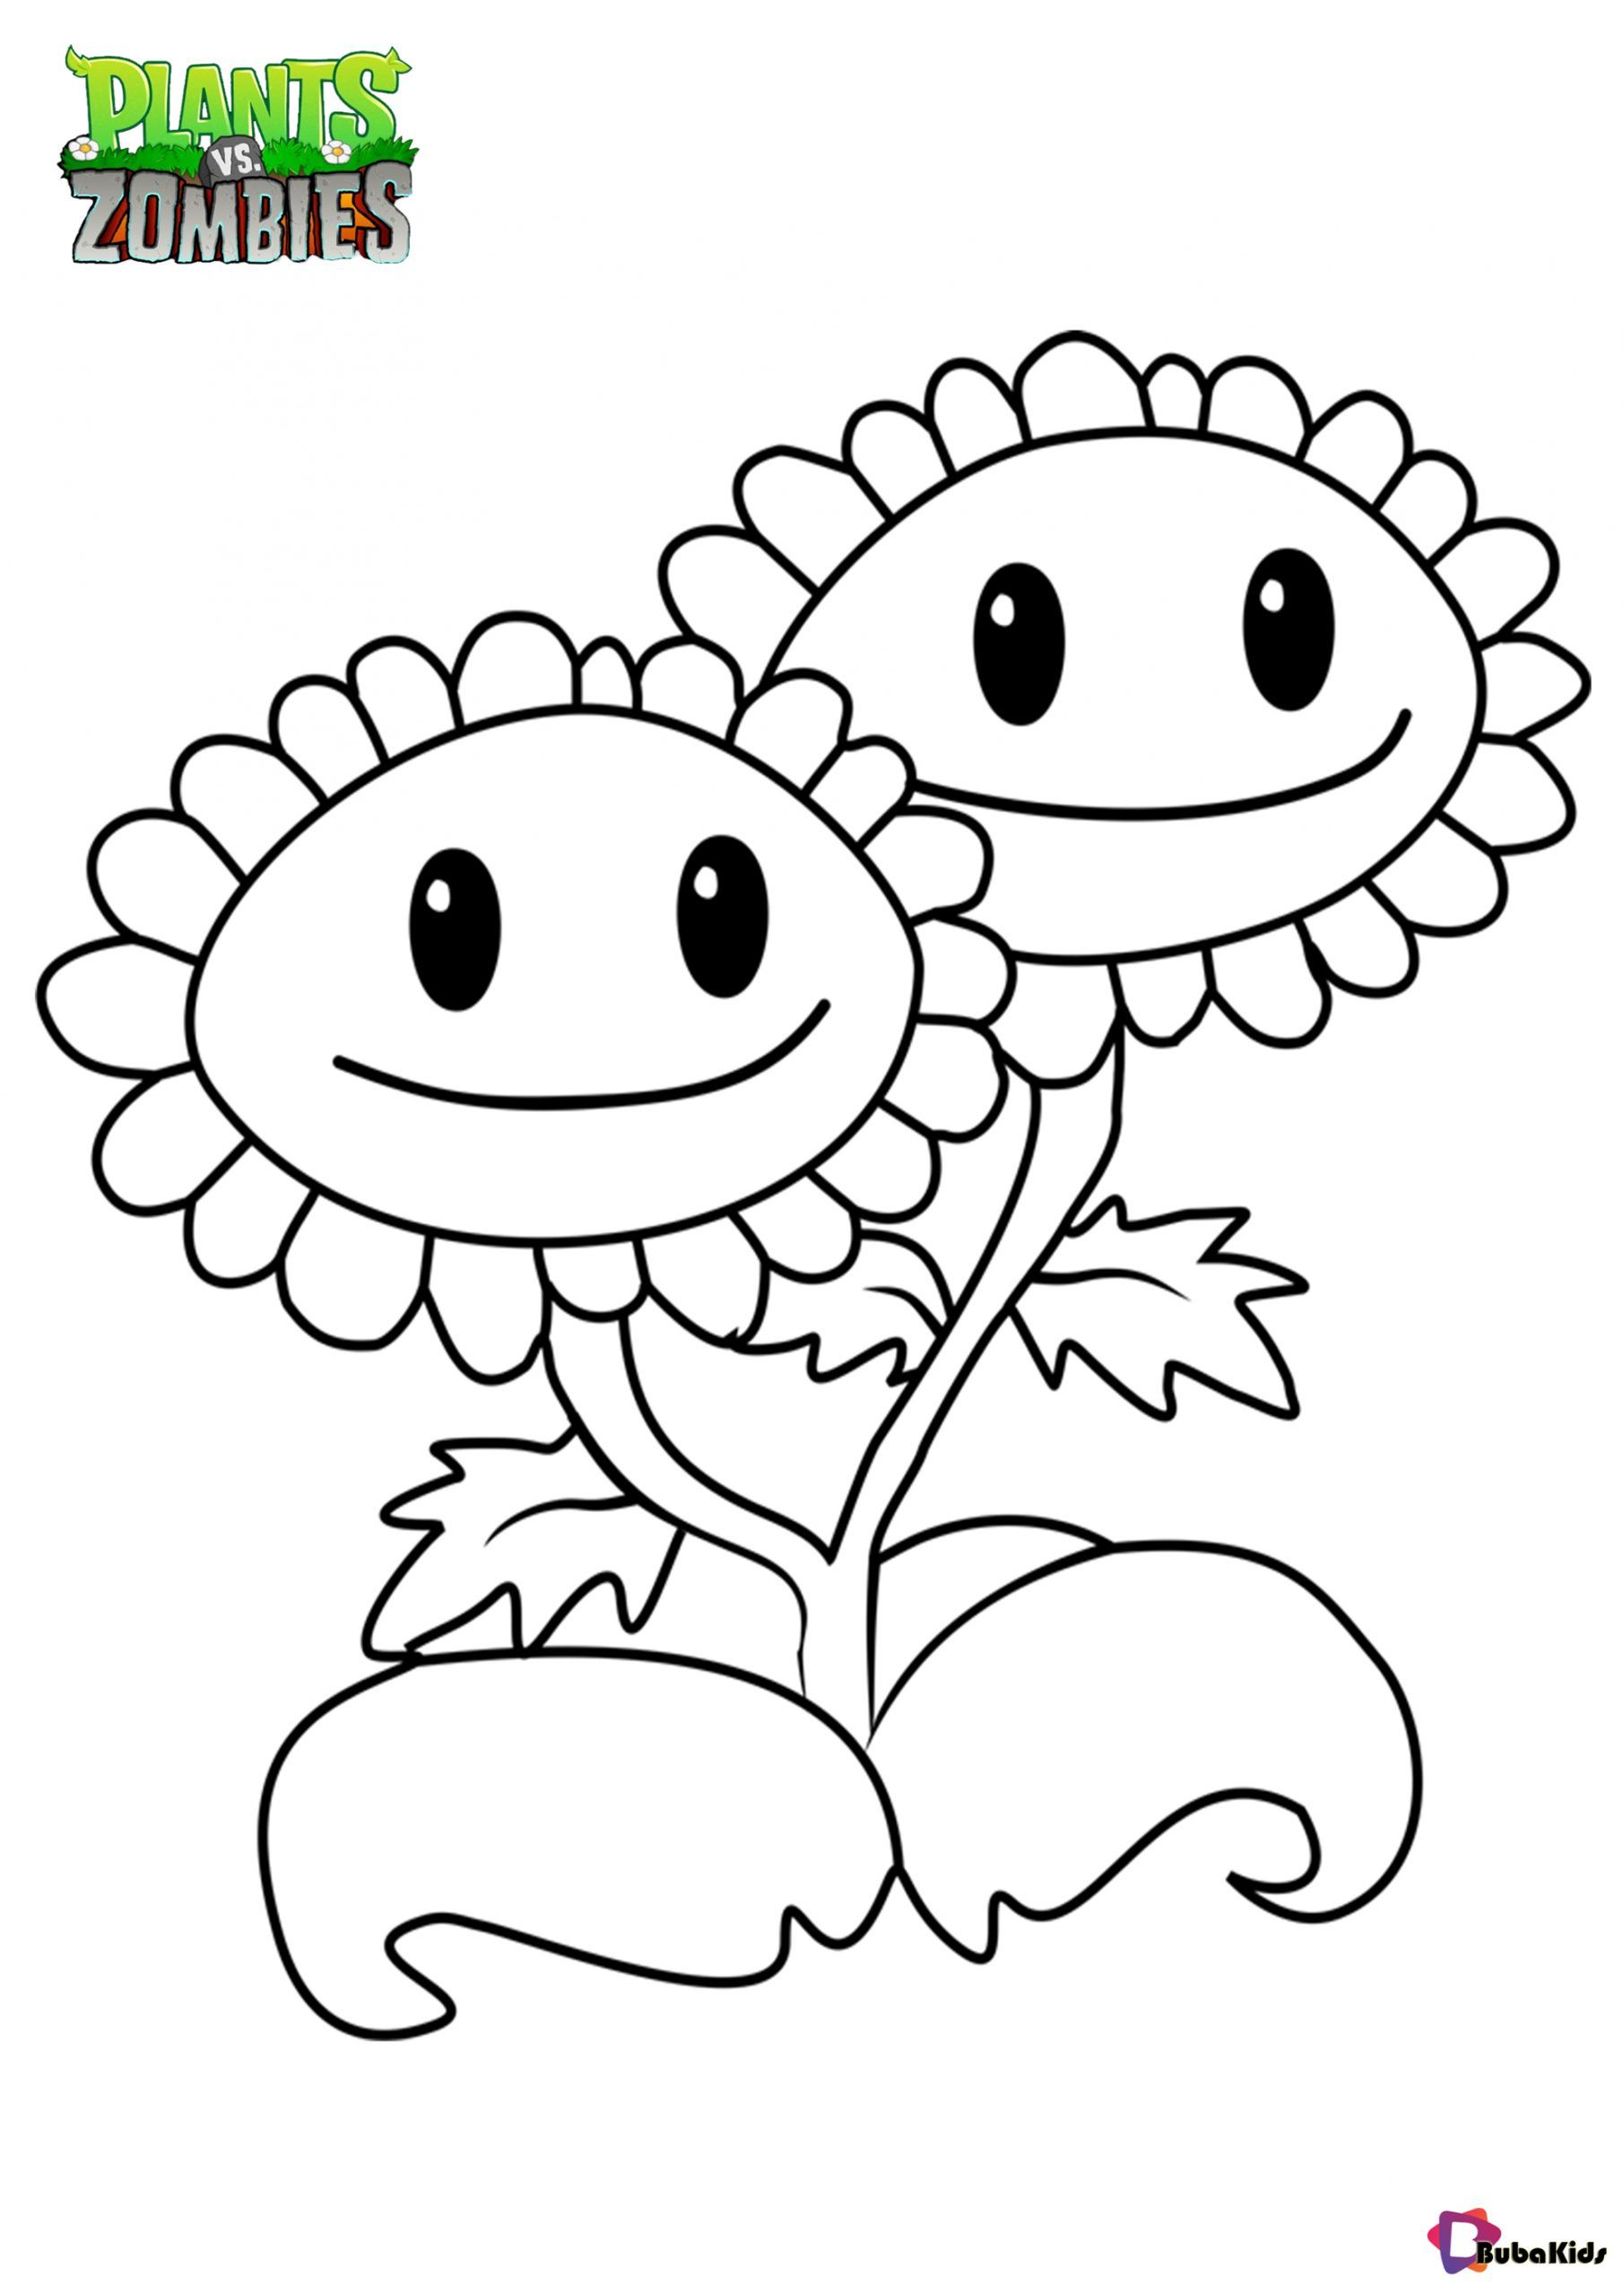 Plants Vs Zombies Twin Sunflower Coloring Page Collection Of Cartoon Colorin Sunflower Coloring Pages Precious Moments Coloring Pages Free Kids Coloring Pages